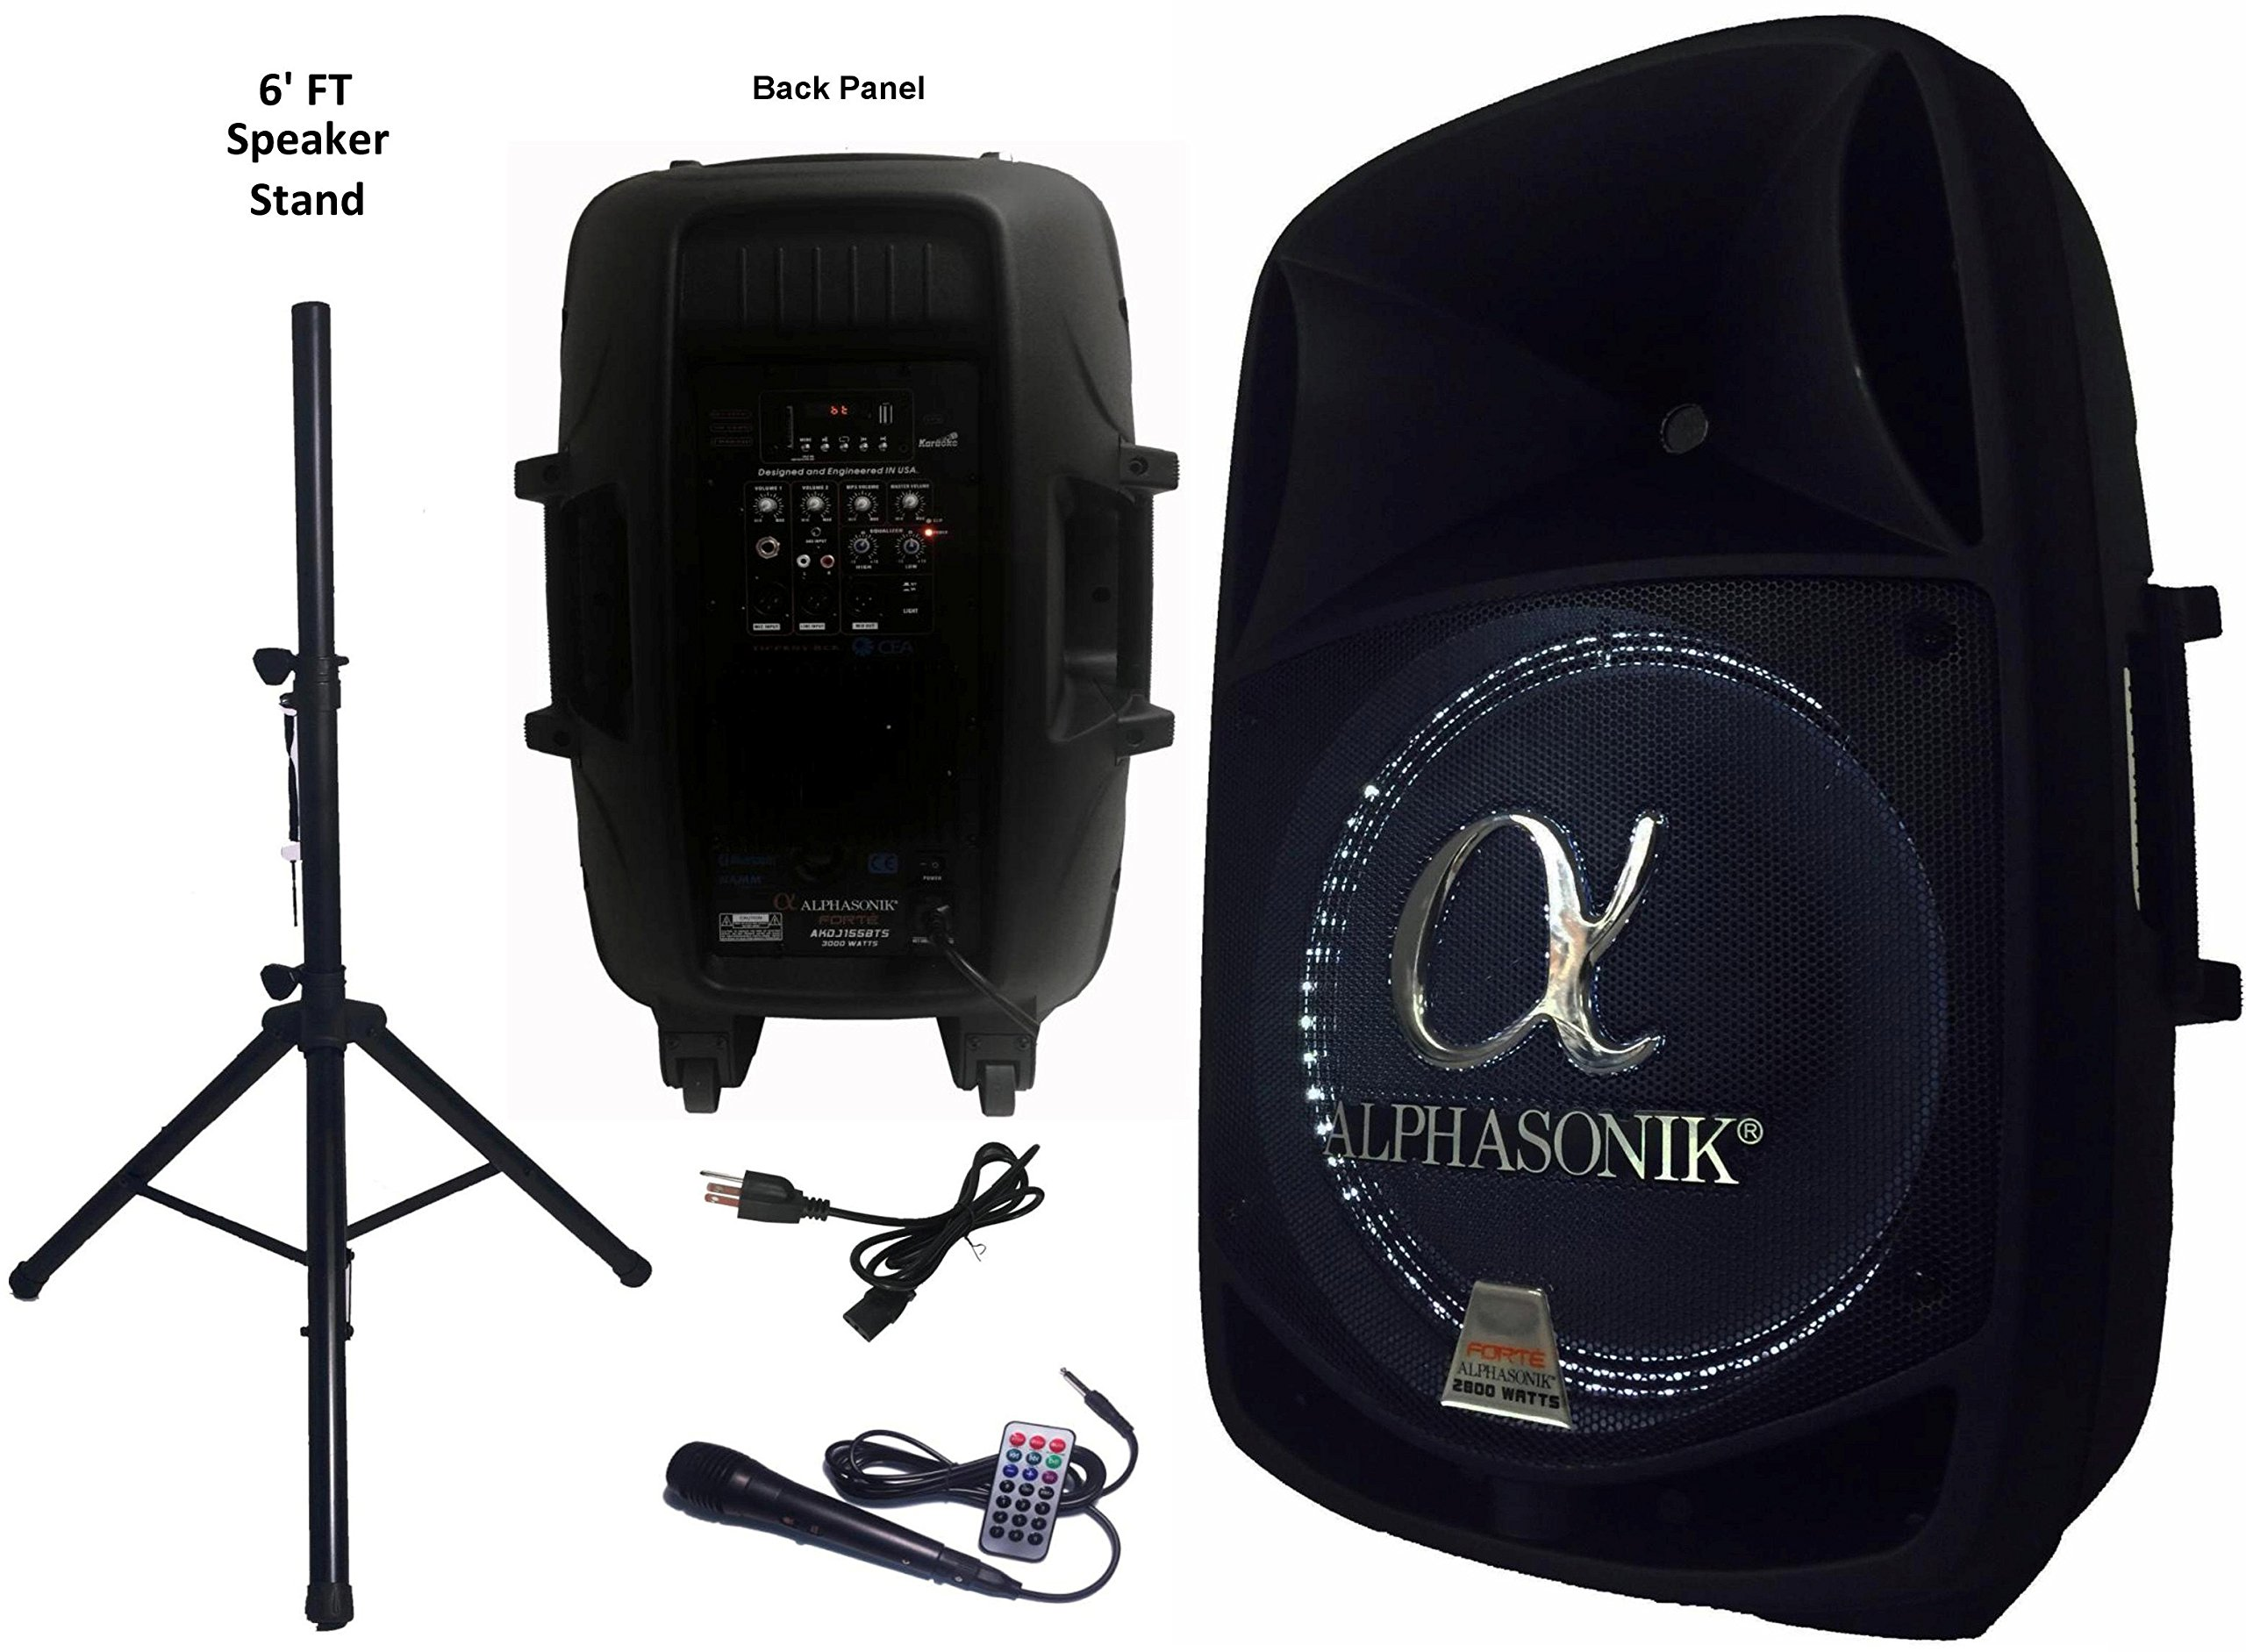 Alphasonik 15'' Powered 2800W PRO DJ Amplified Loud Speaker Bluetooth USB SD Card AUX MP3 FM Radio PA System LED Ring Karaoke Feature Mic (Main Monitor, Band, Church, Party, Guitar Amp) w/ Tripod Stand by Alphasonik